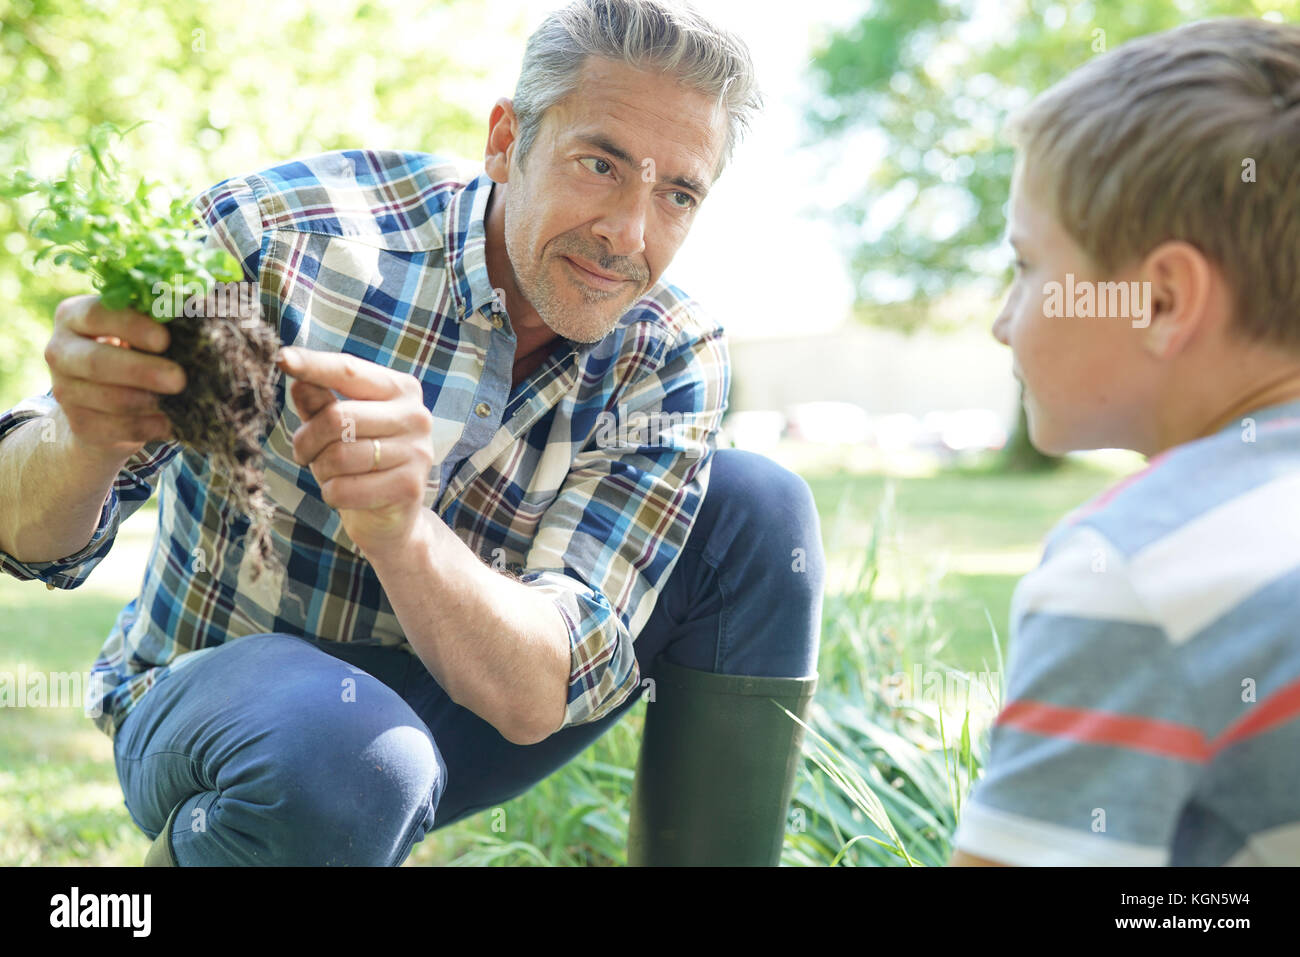 Father teaching son how to plant in vegetable garden - Stock Image